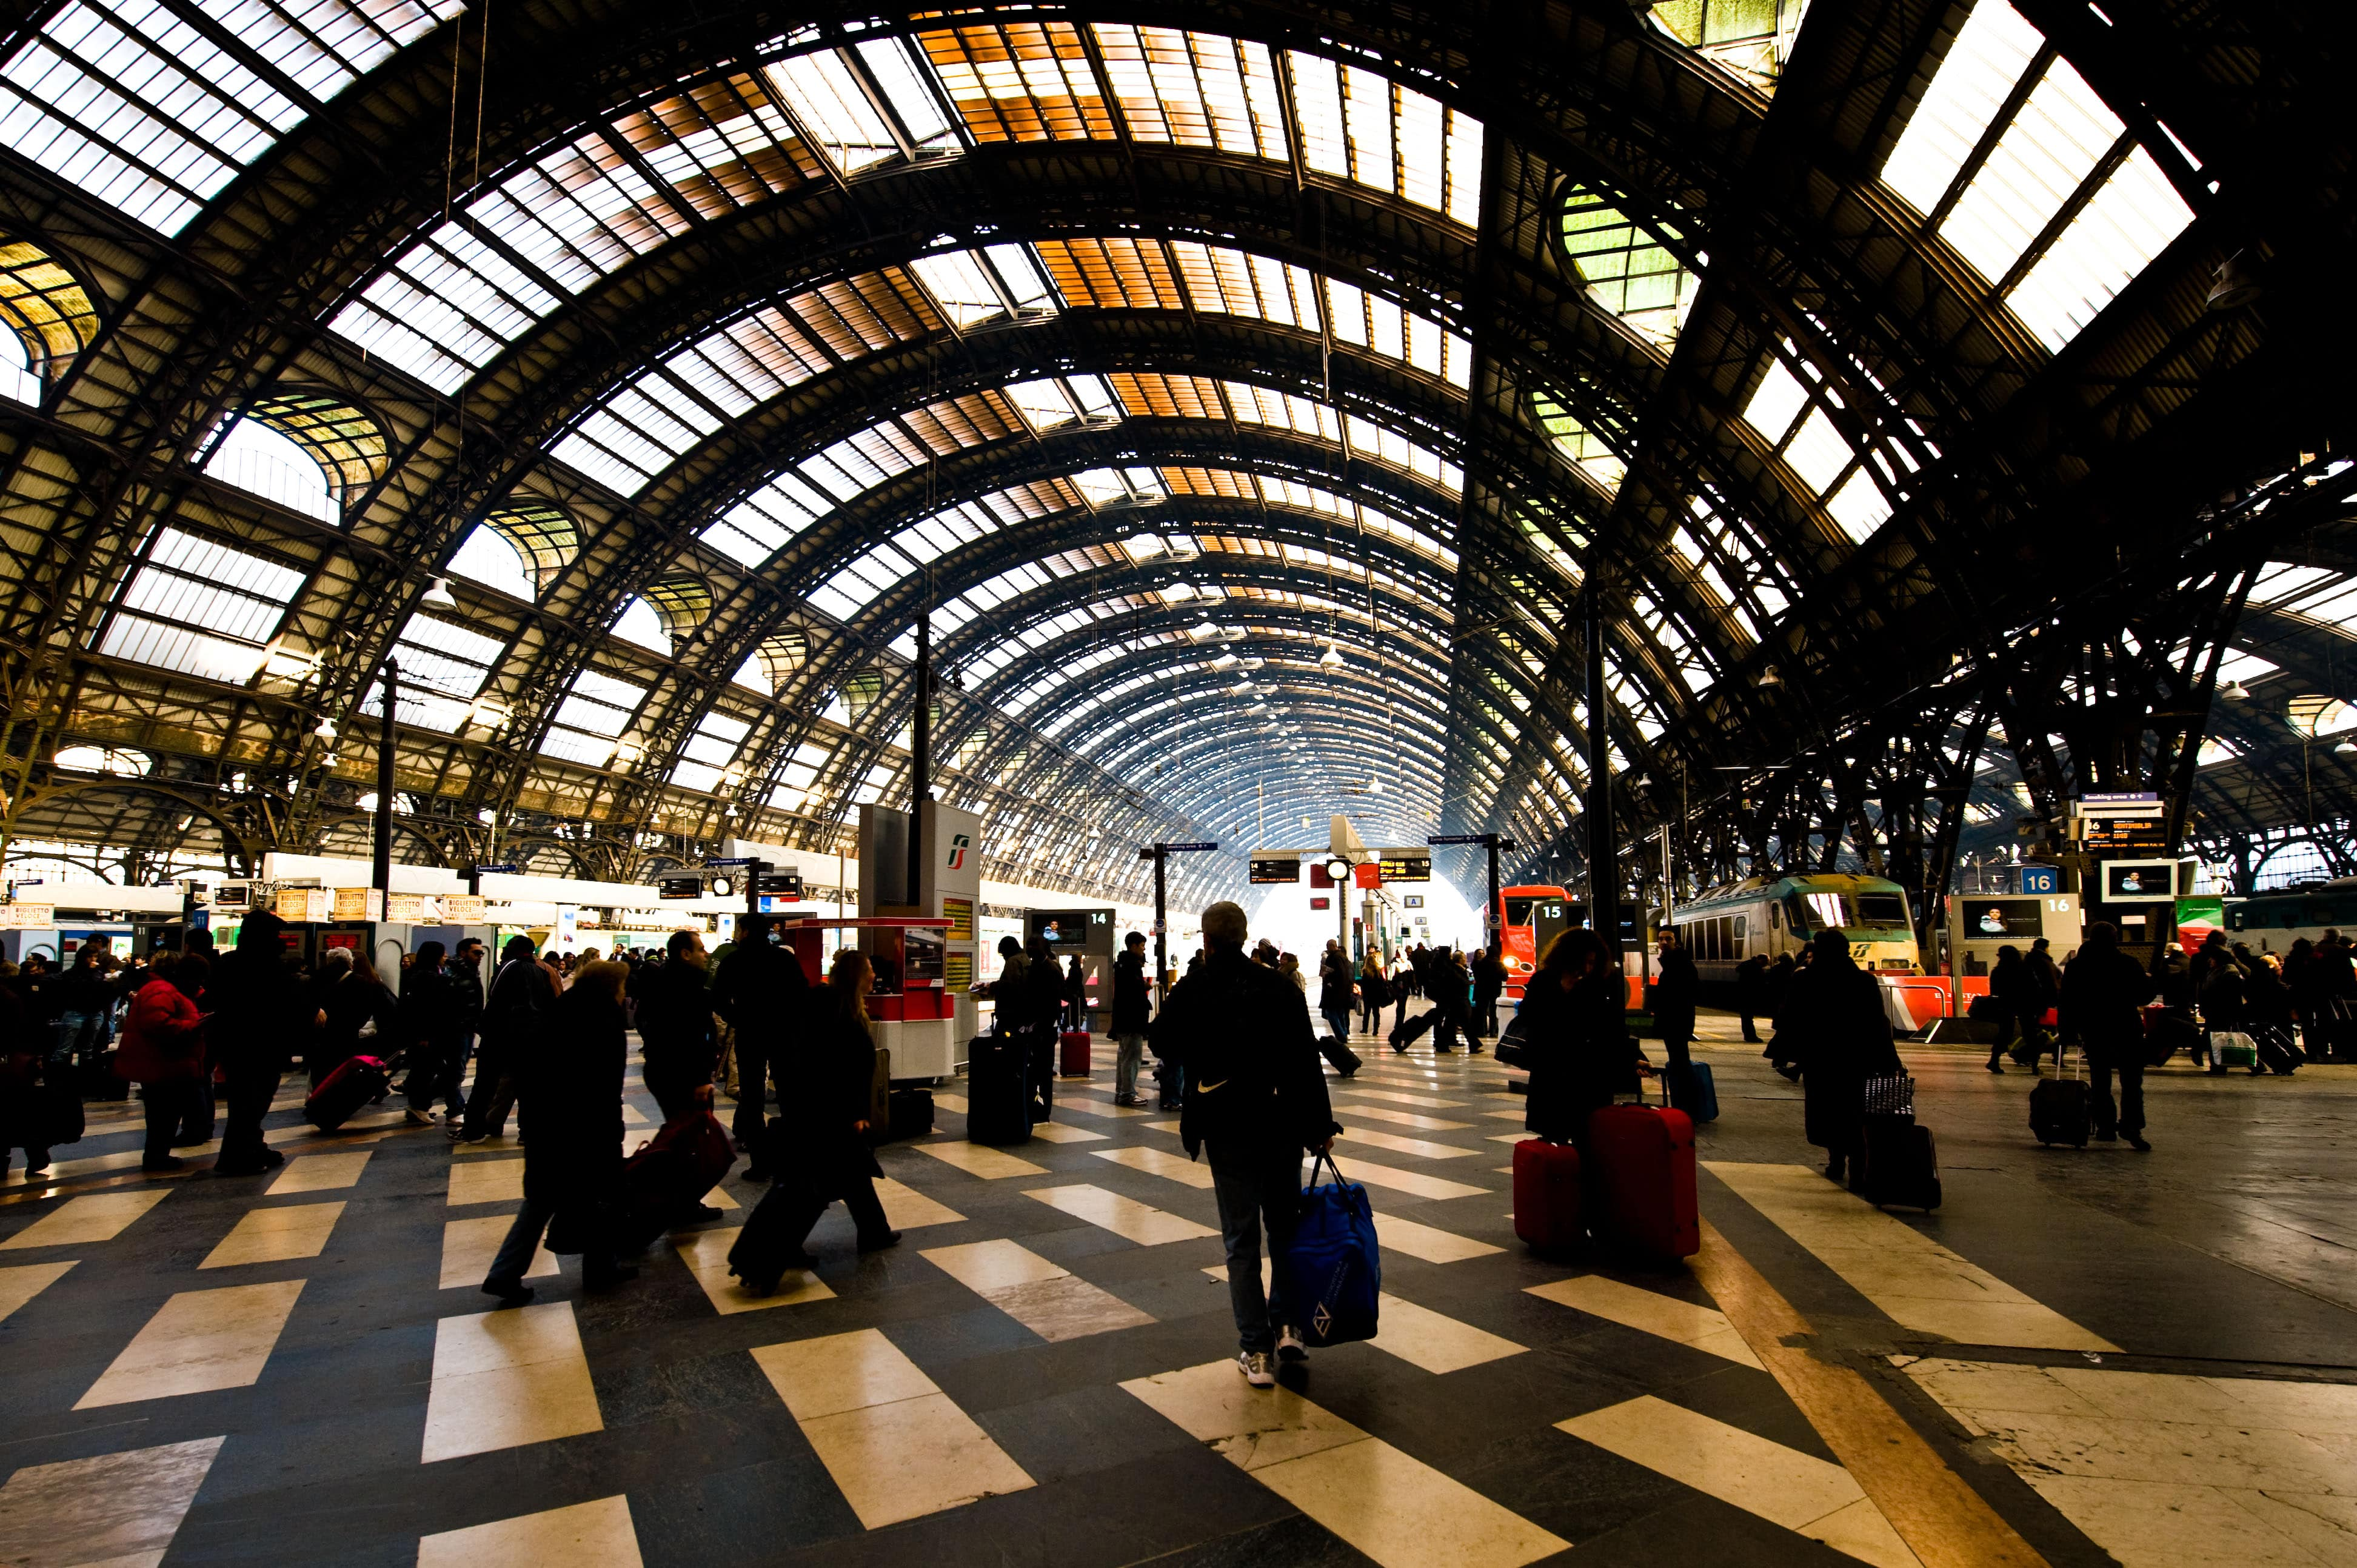 When it comes to transportation in Italy, Trenitalia is a good bet